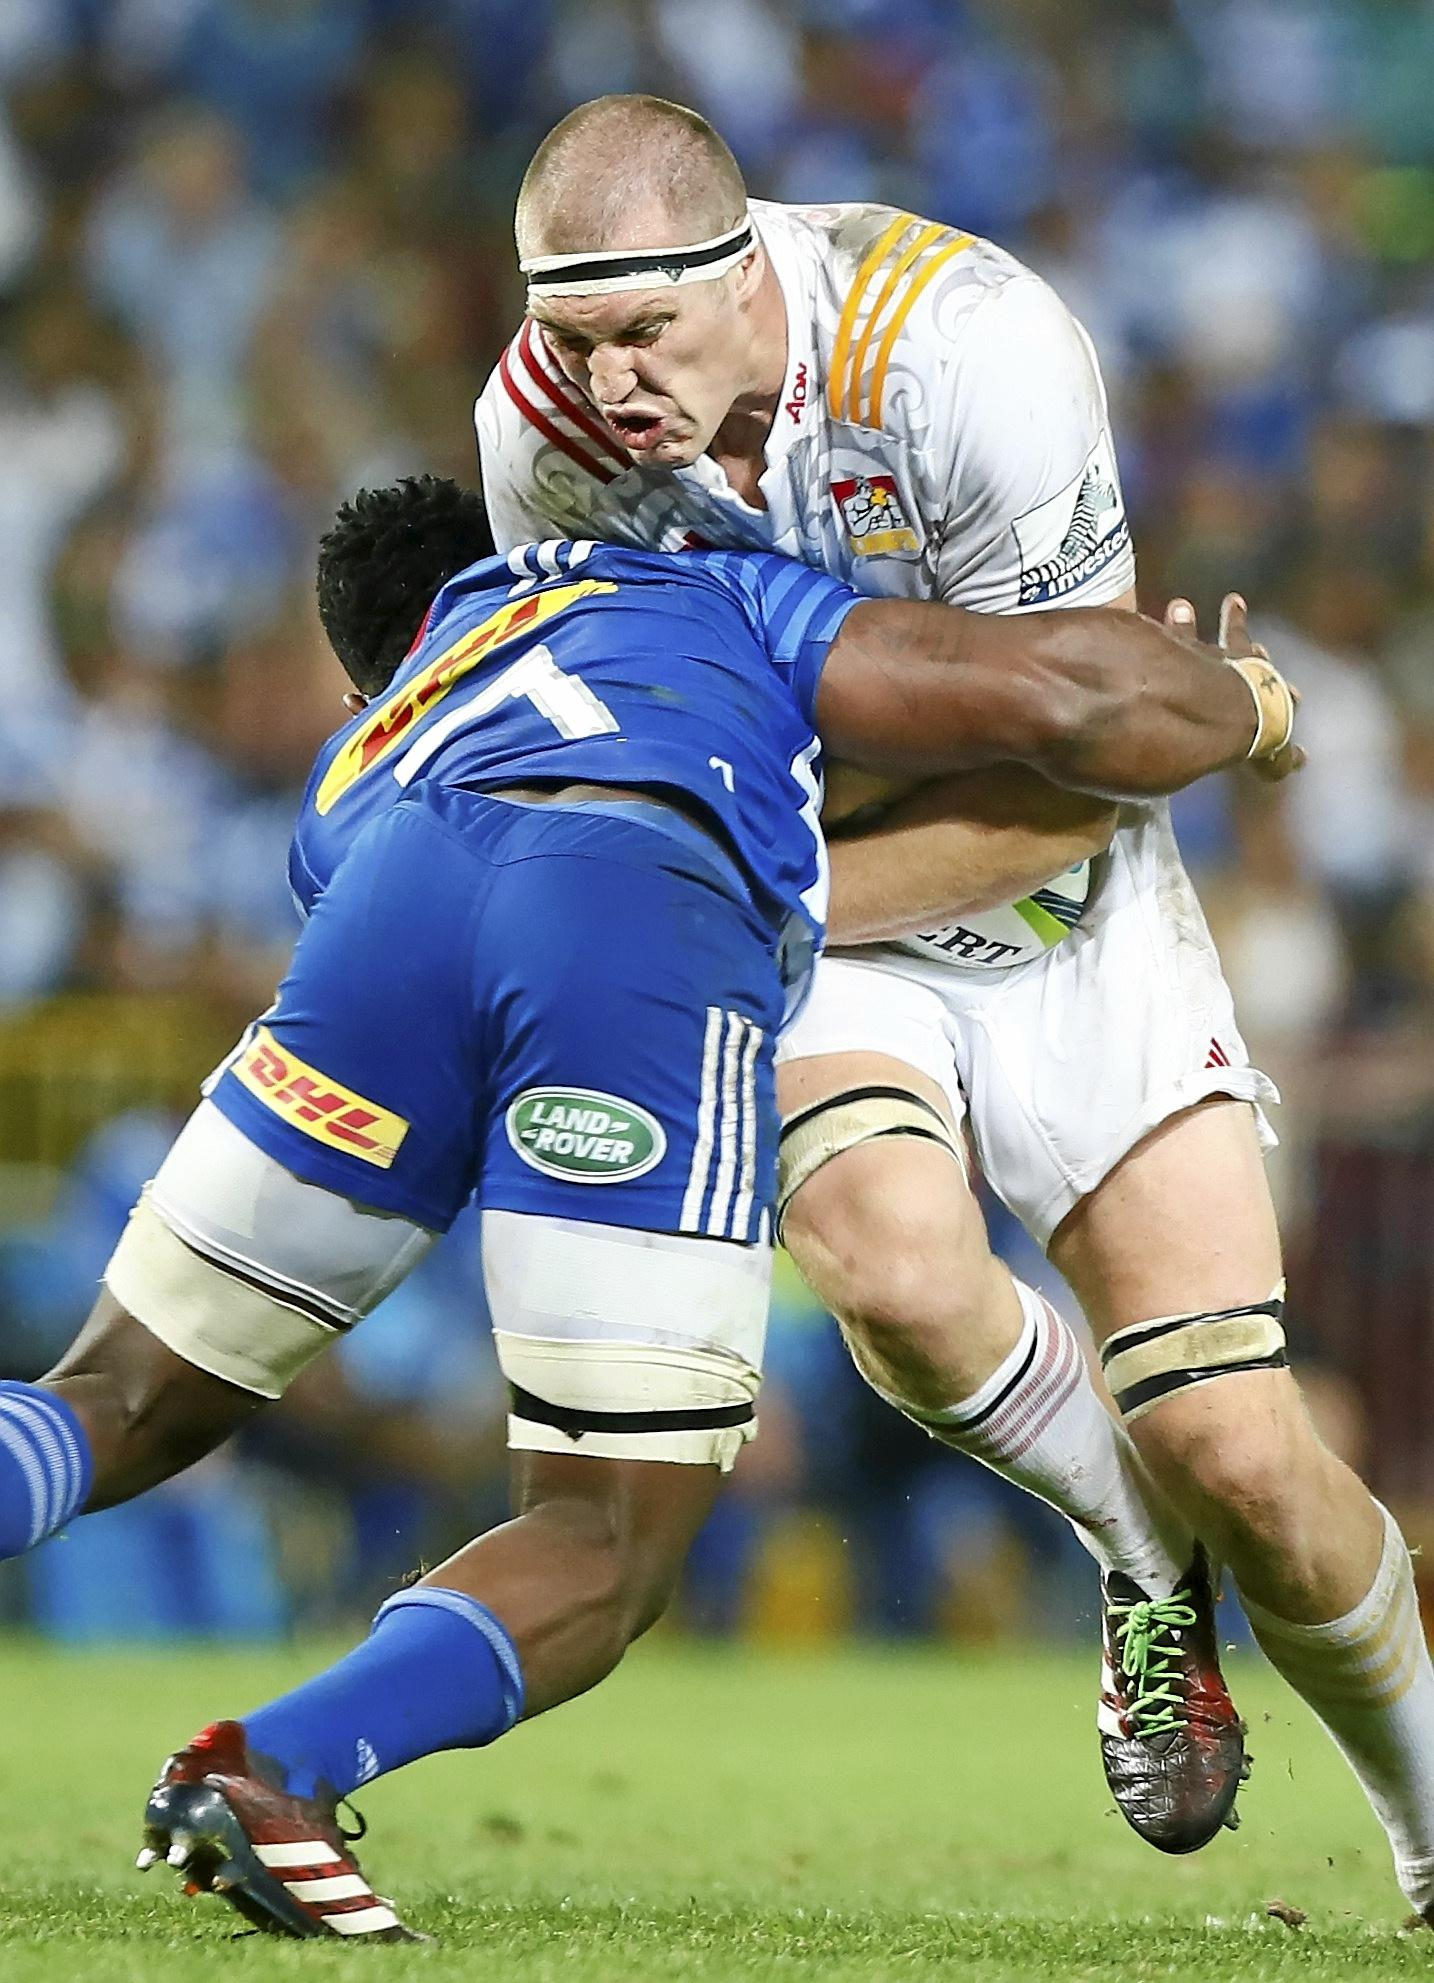 Chiefs lock Brodie Retallick looms as a key figure in the Super Rugby clash against the Reds on Saturday night.